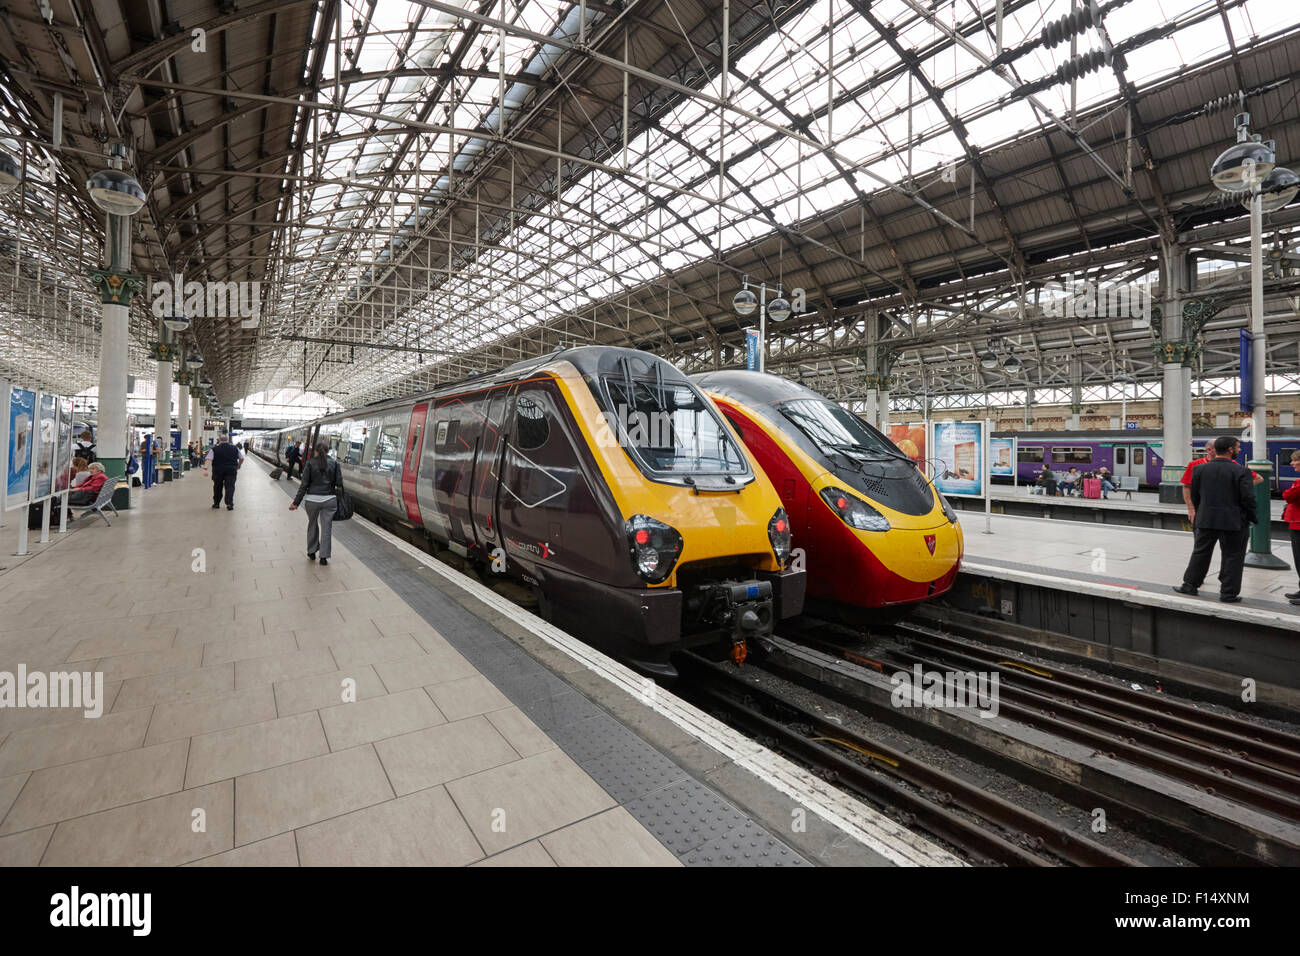 cross country and virgin pendolino trains at Piccadilly train station Manchester UK - Stock Image